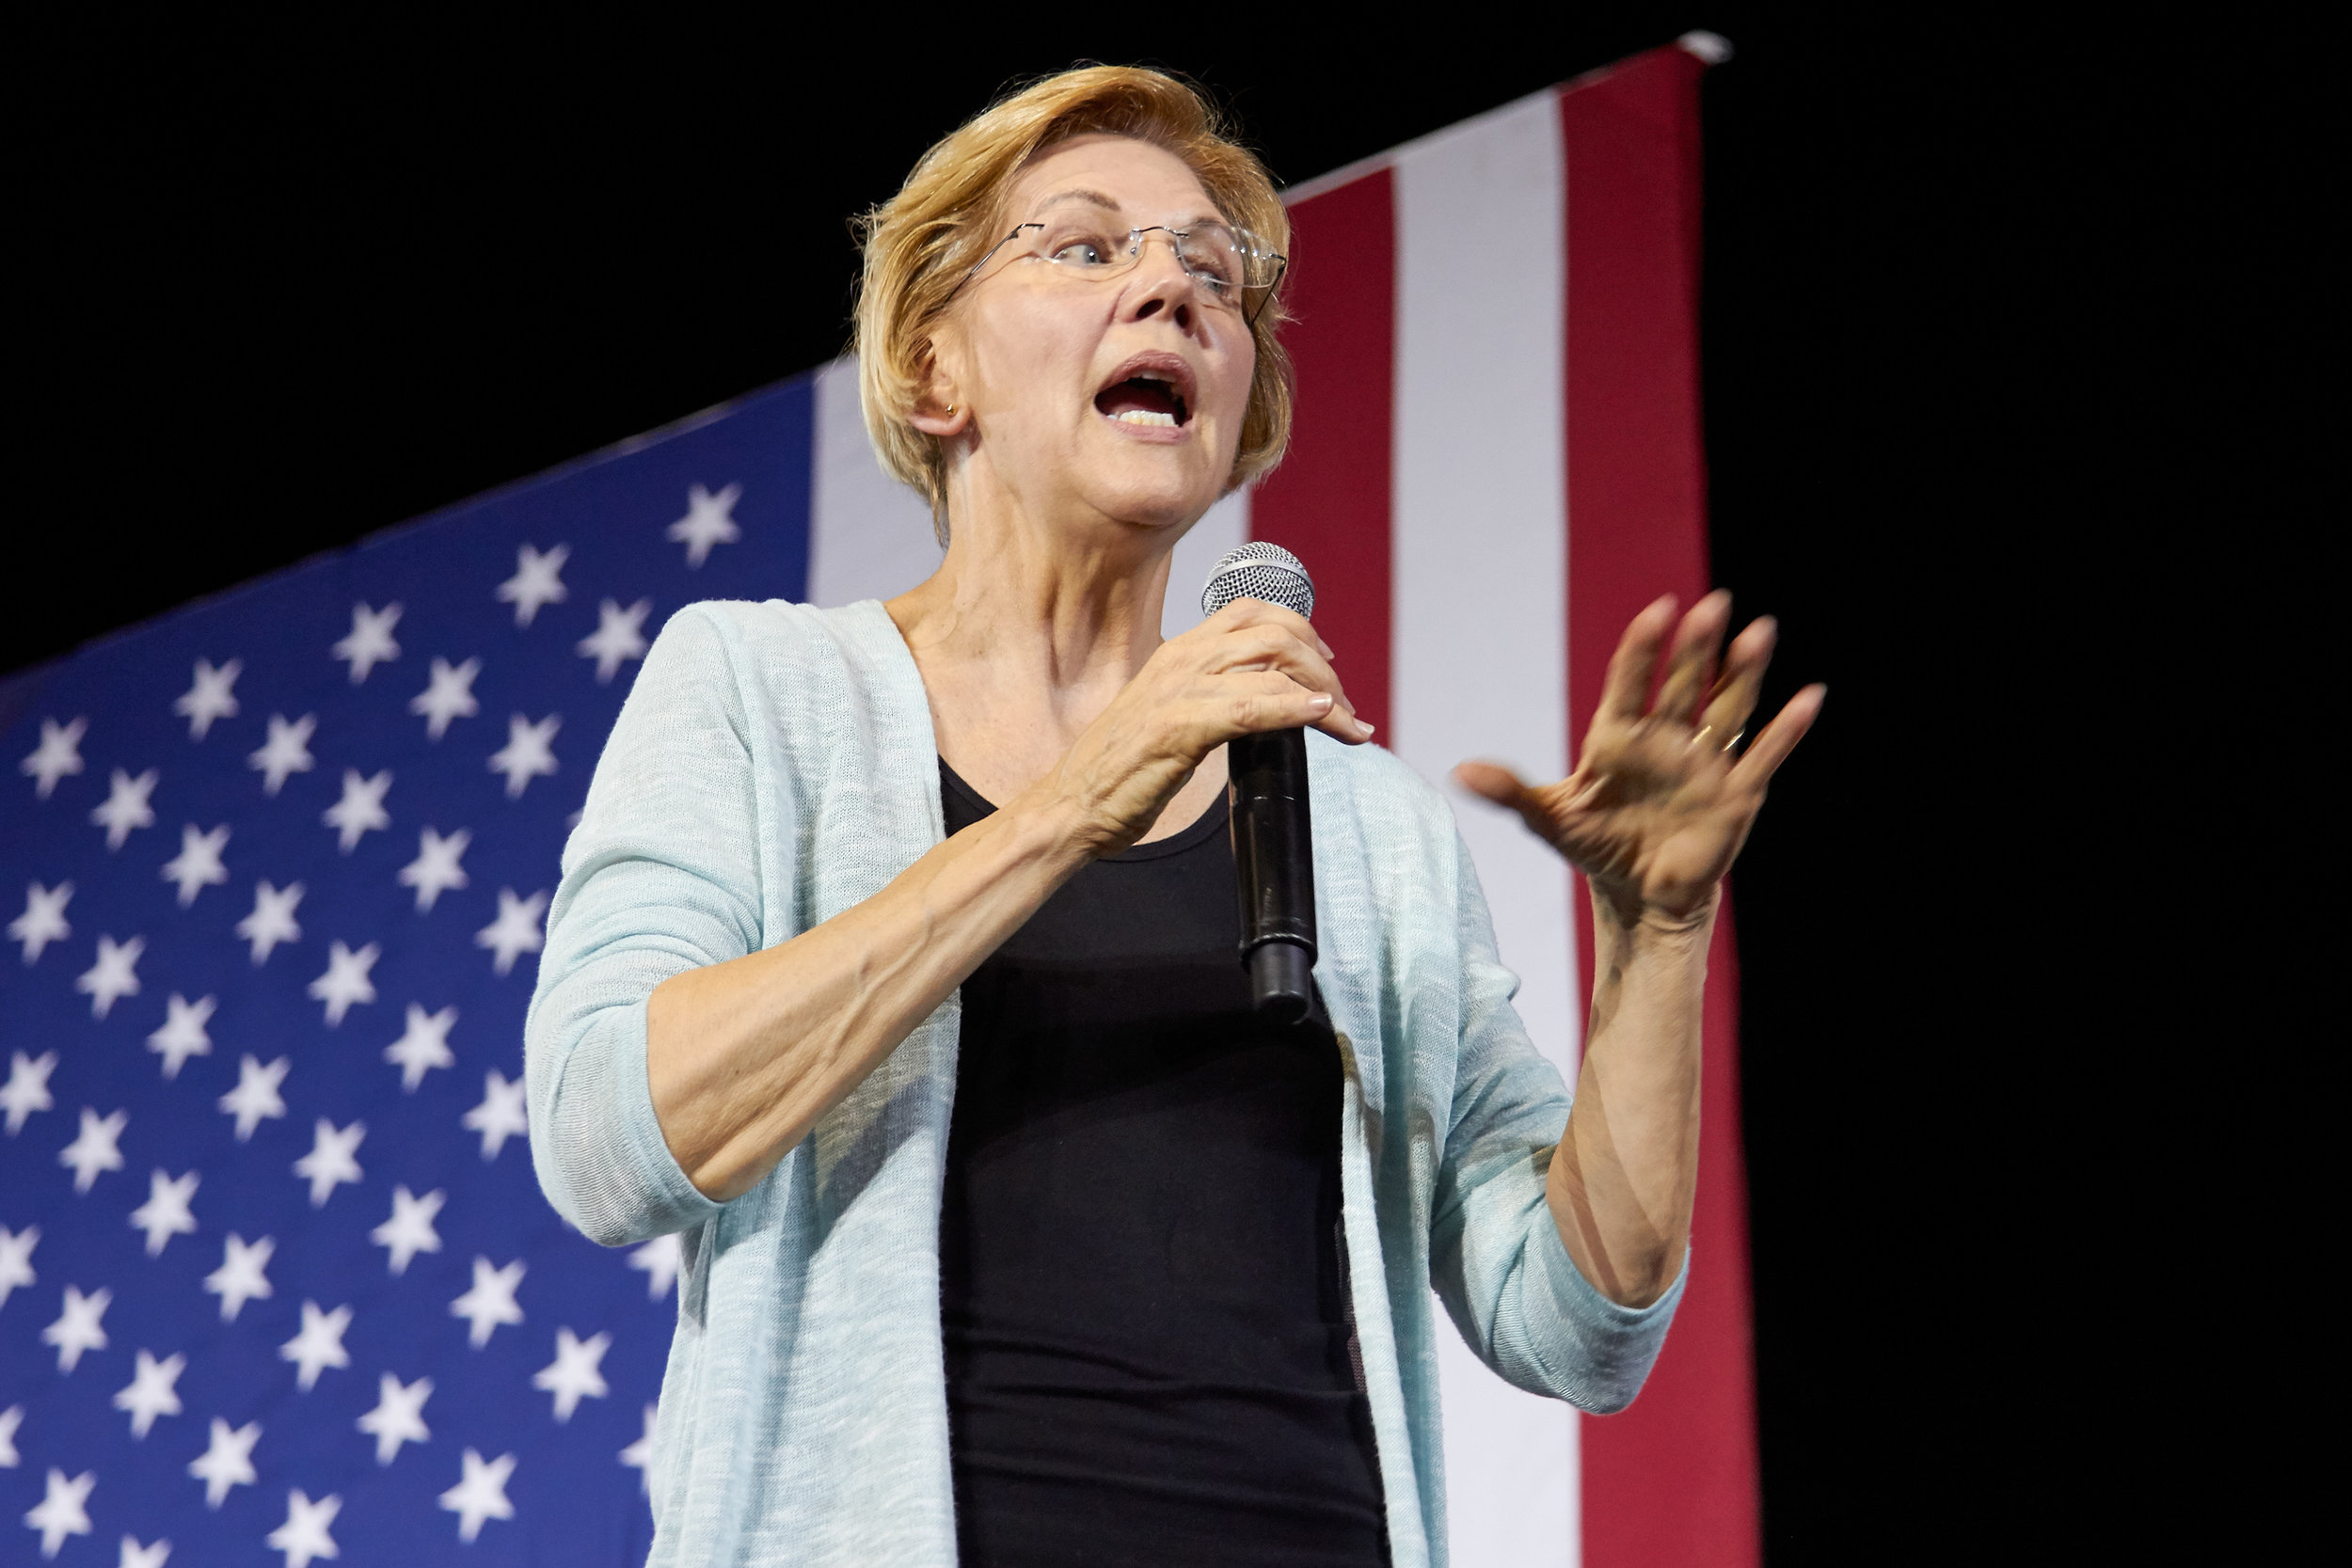 Massachusetts senator Elizabeth Warren speaks at a Town Hall event for her presidential campaign, at the Shrine Expo Hall, Los Angeles, California, on August 21st 2019. (Marco Pallotti/The Corsair)